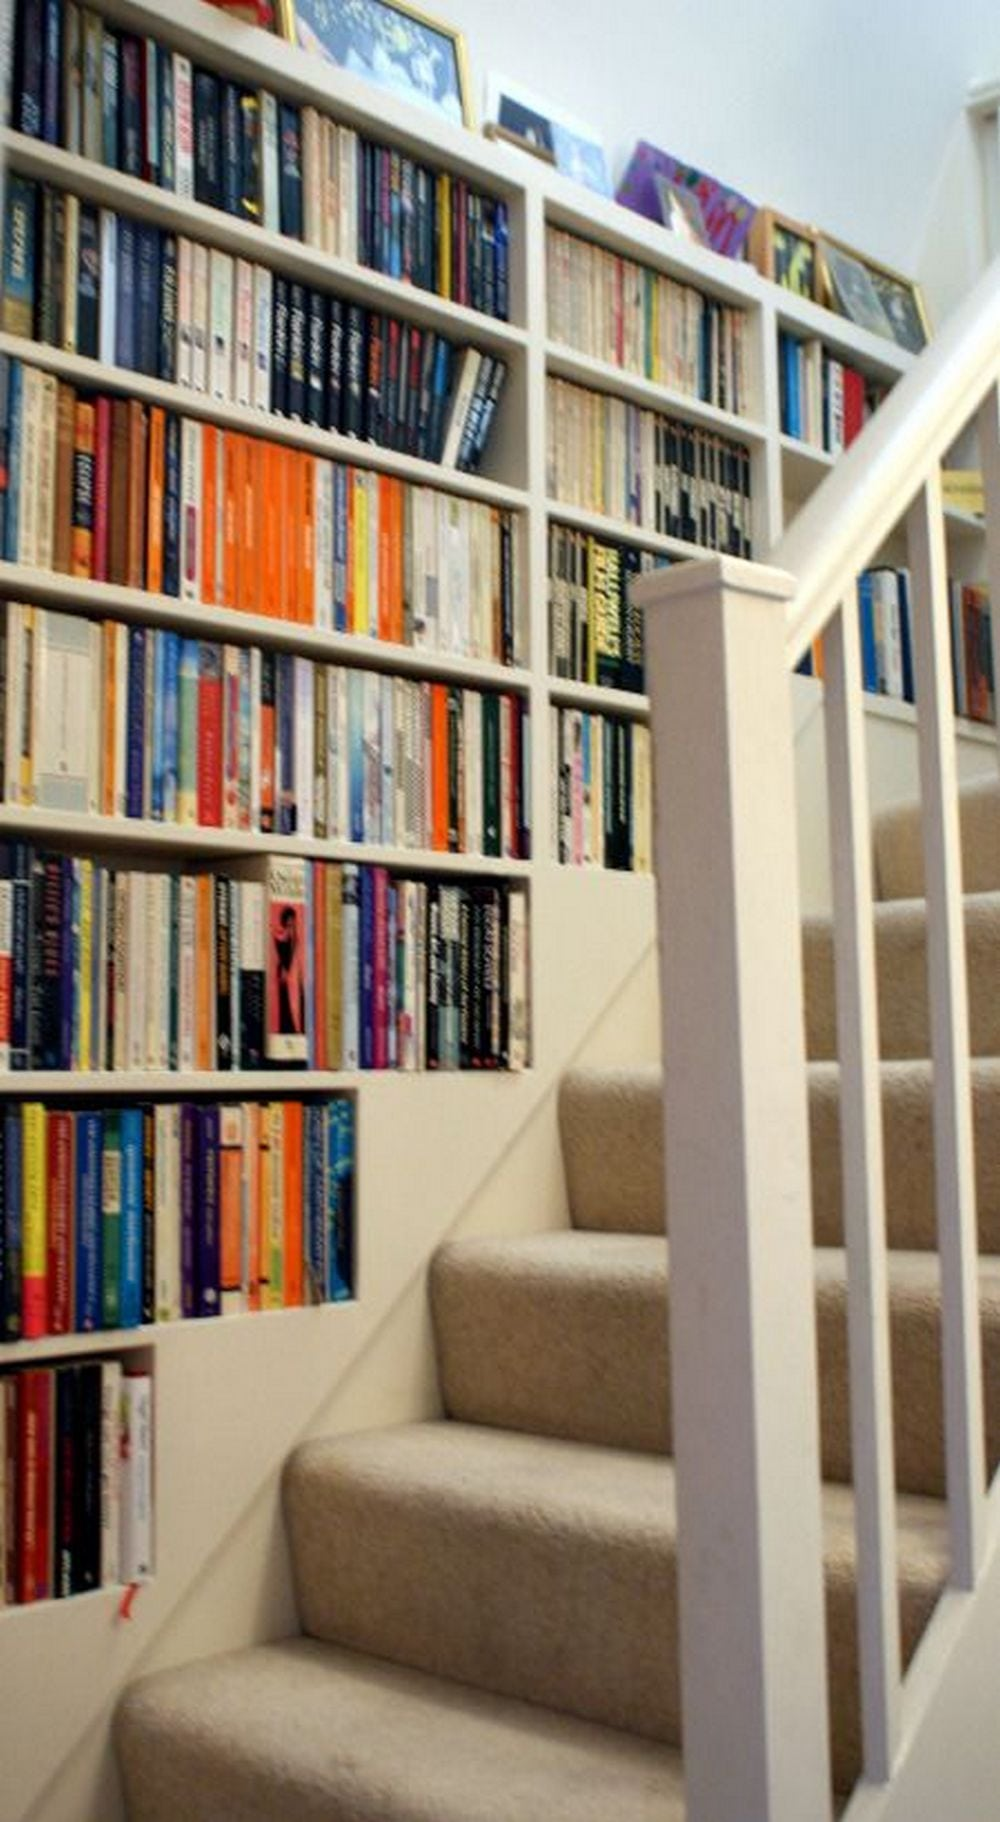 How to Build a Staircase Bookshelf